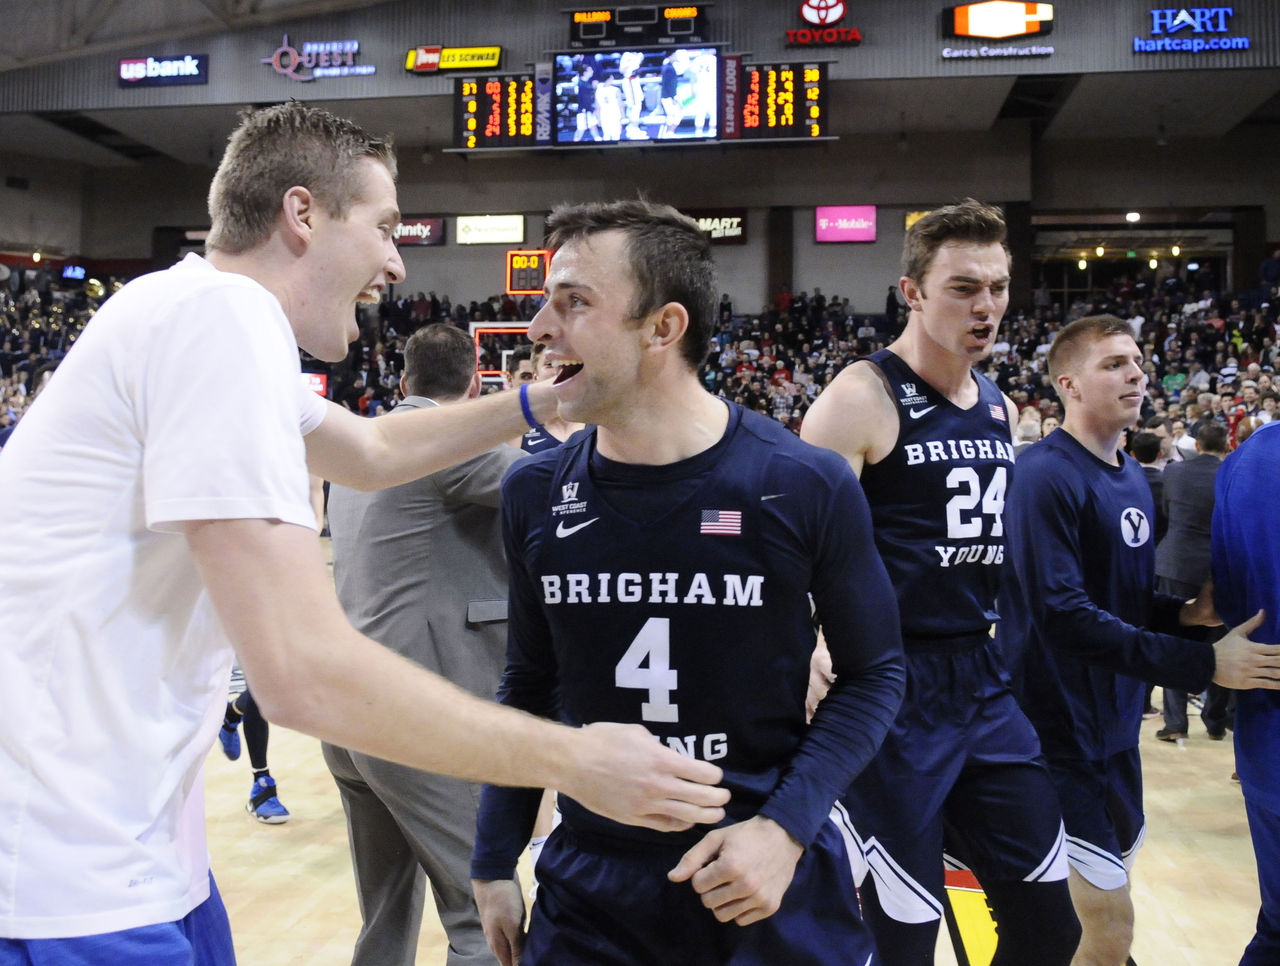 Cropped 2017 02 26t055829z 61082770 nocid rtrmadp 3 ncaa basketball brigham young at gonzaga